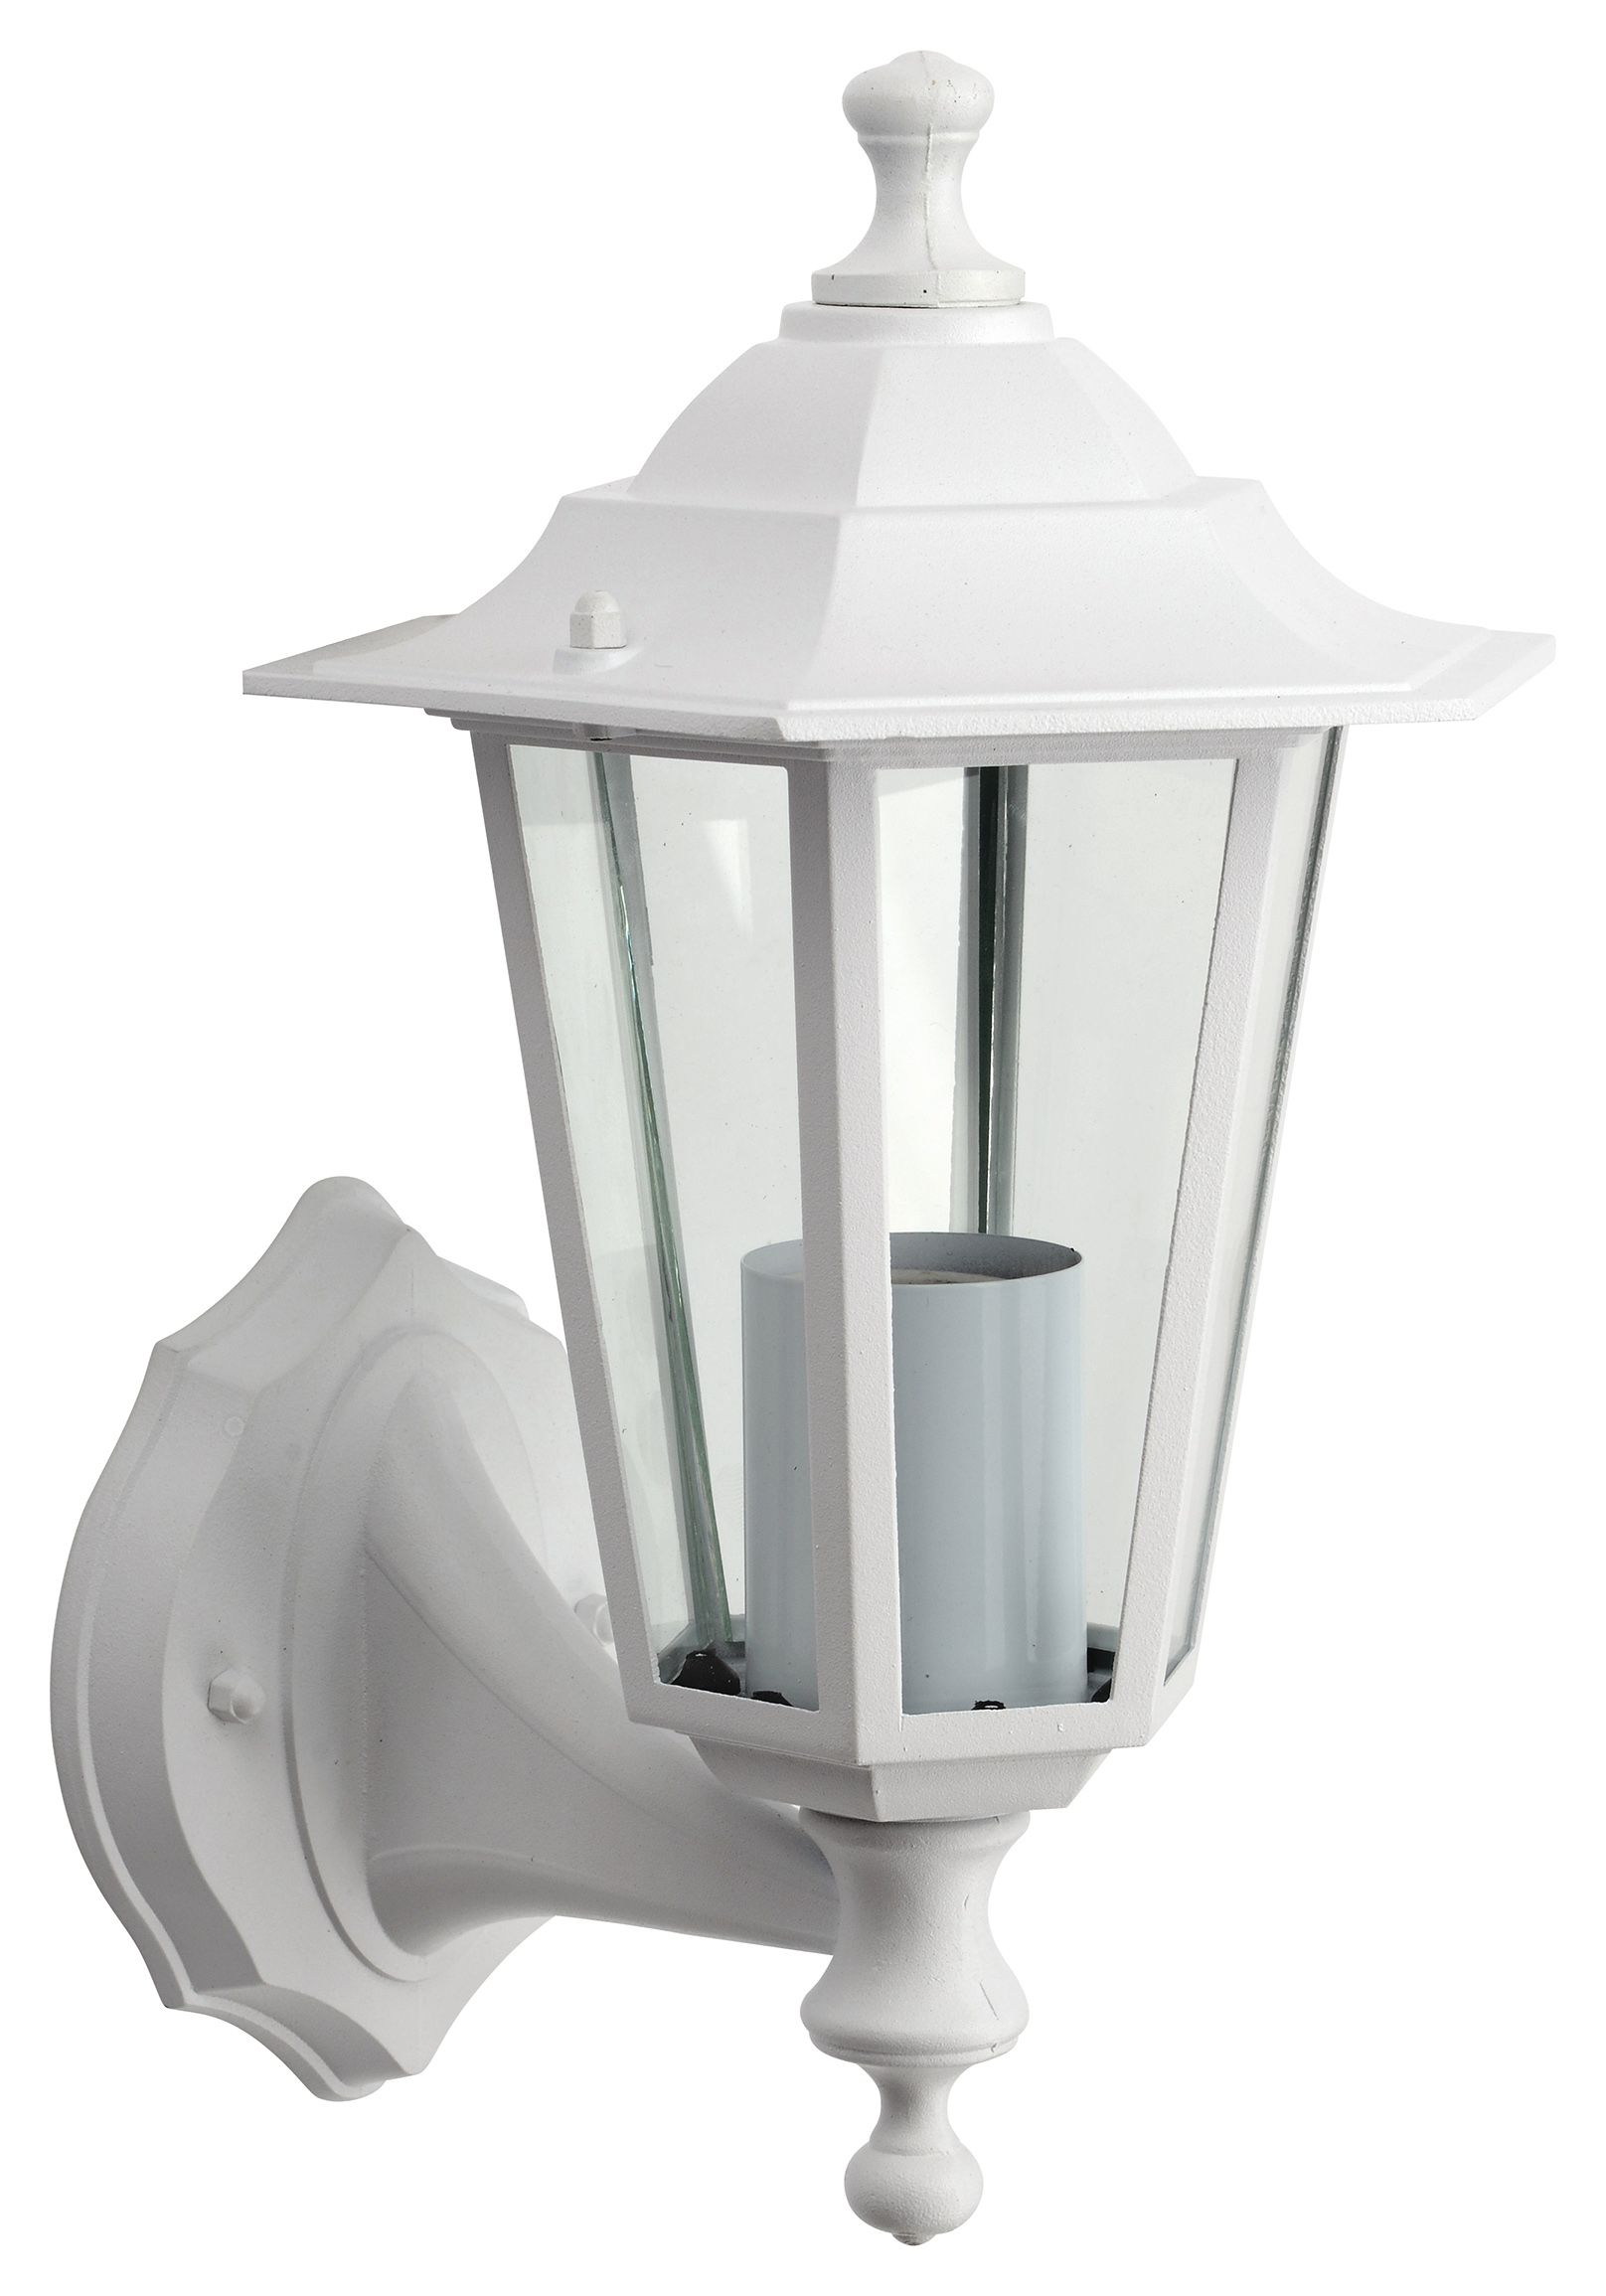 Garden Lanterns & Wall Lights Exterior Lights Wickes.co.uk